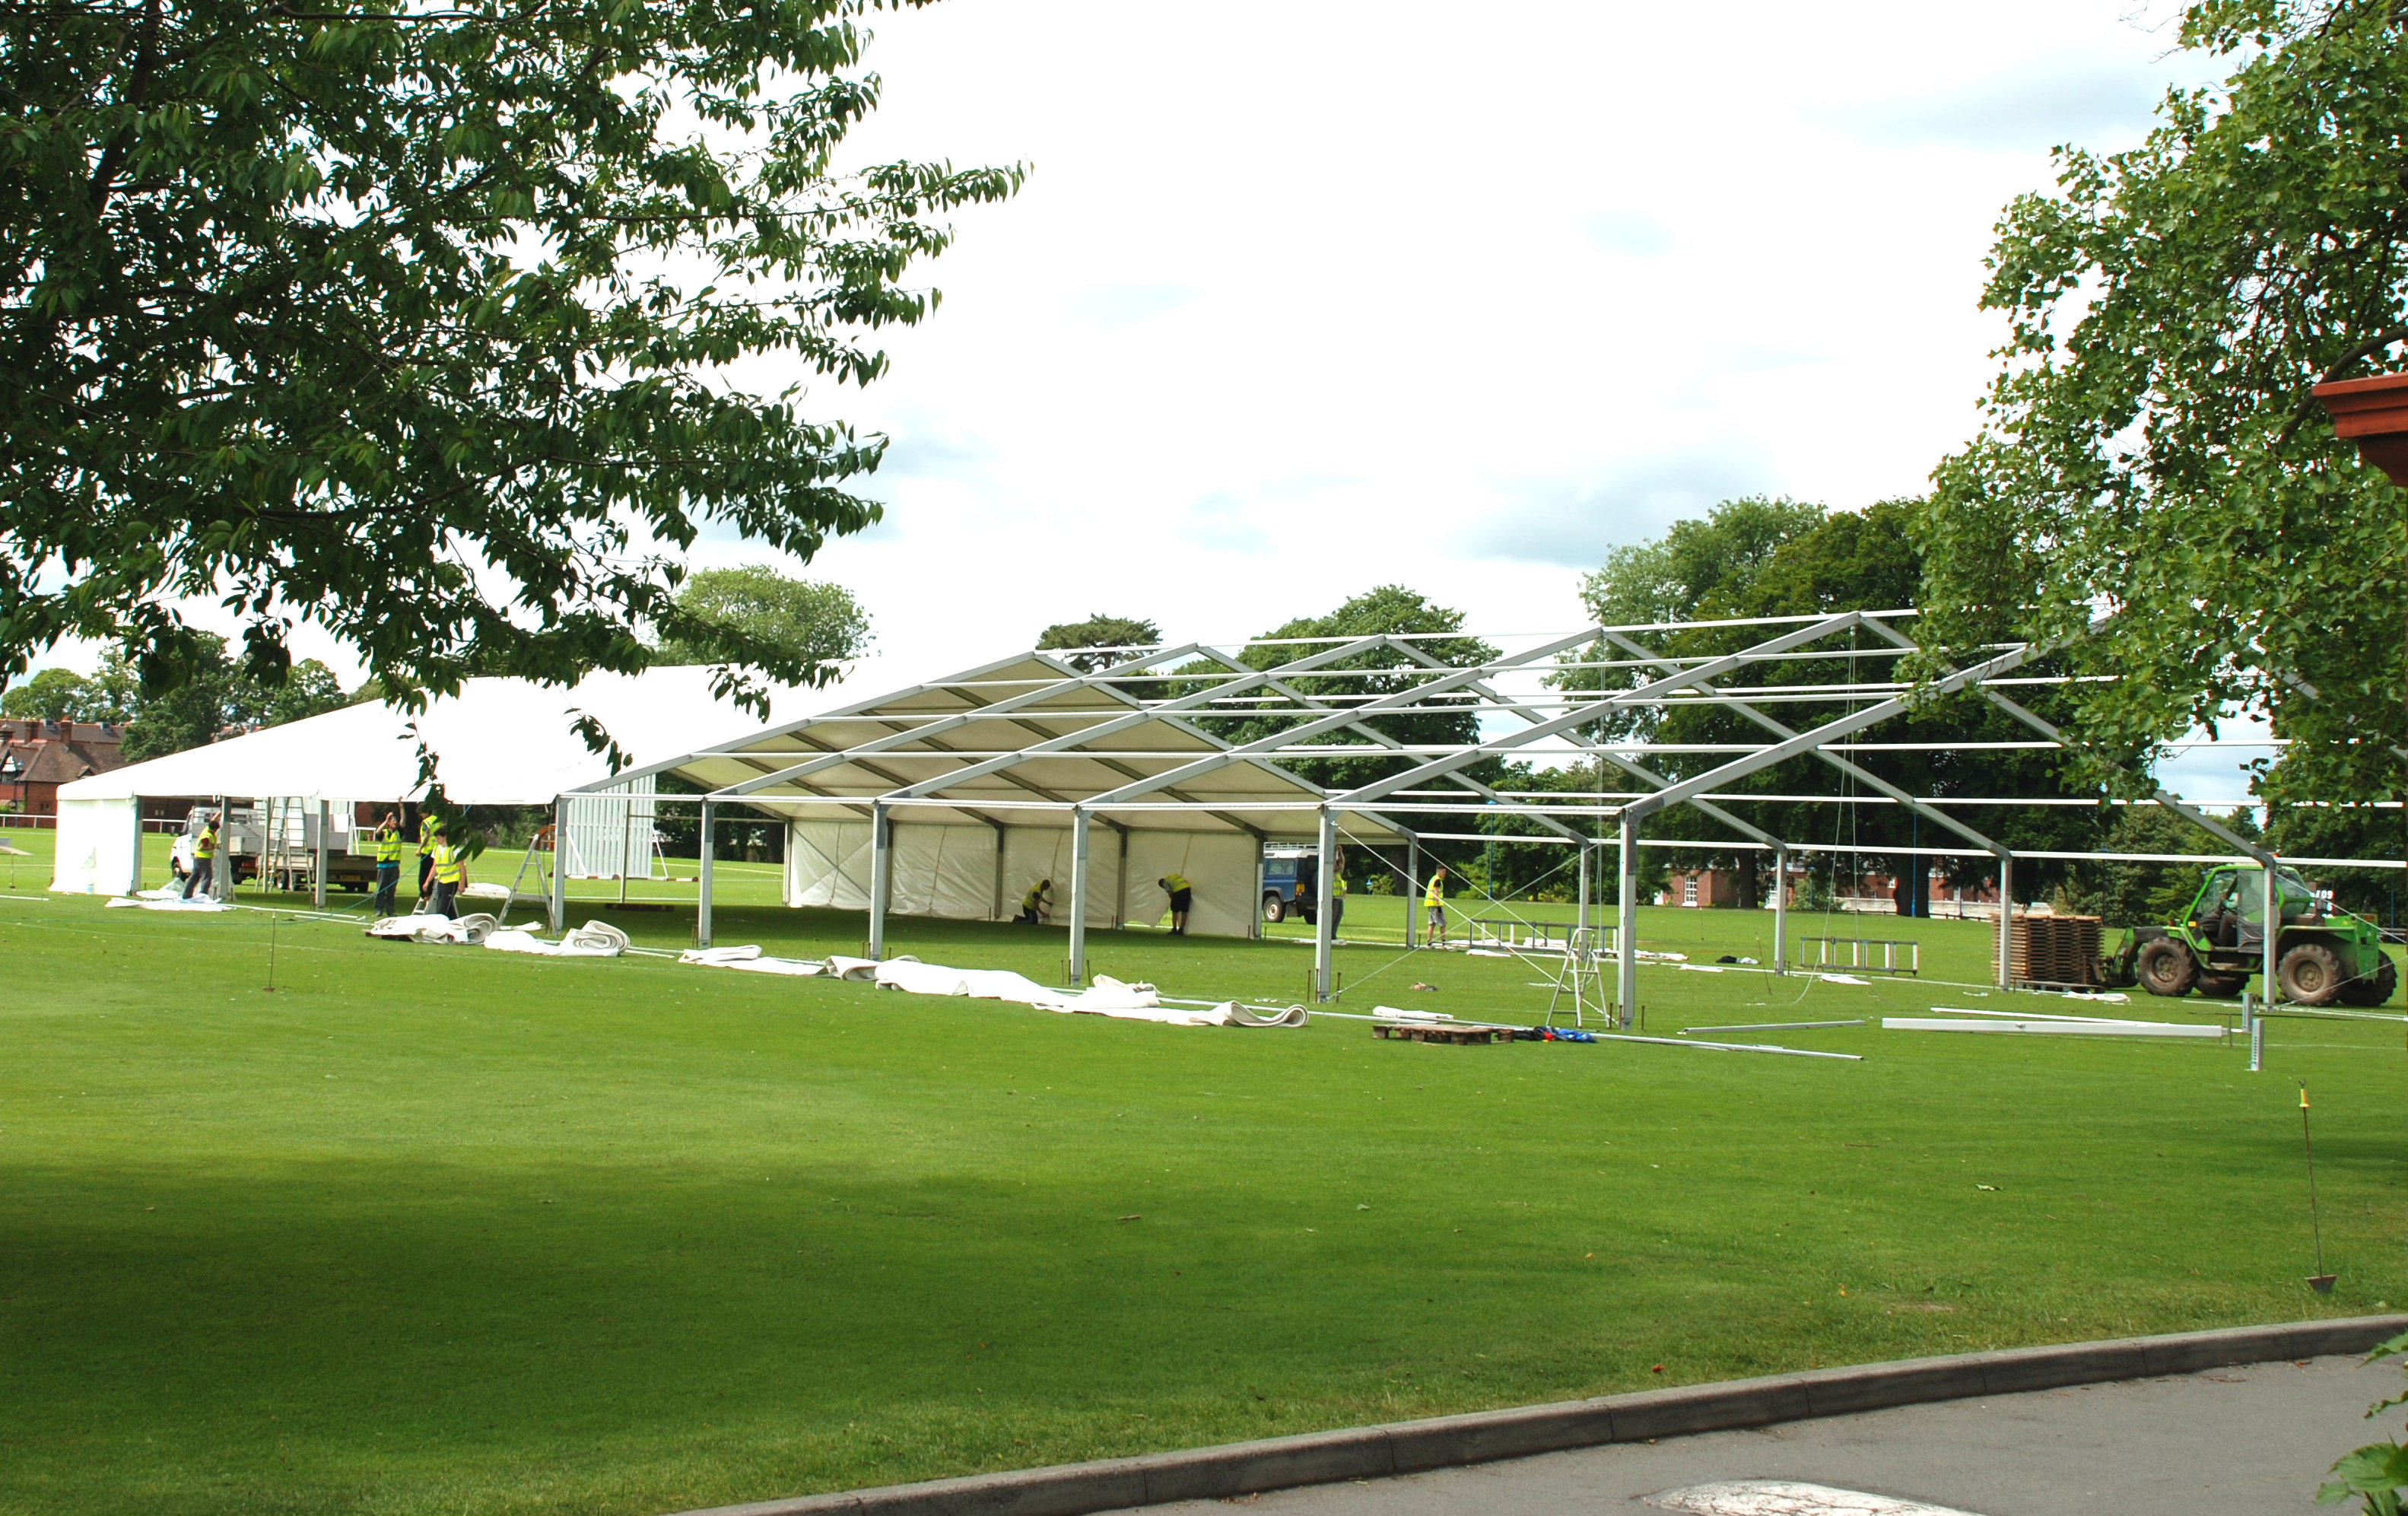 Marquee being built